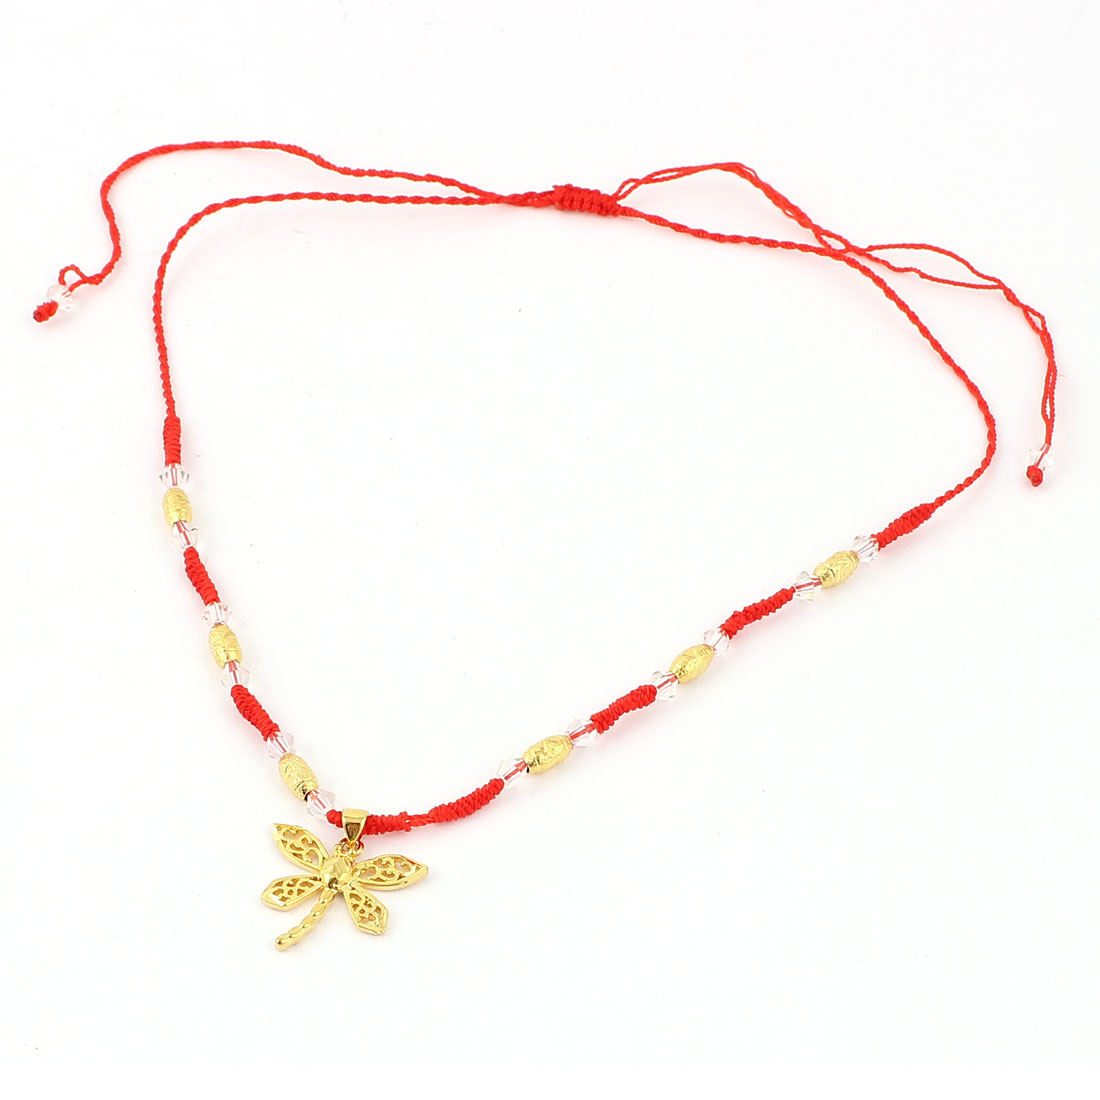 Butterfly Pendant Beads Decor Red Knitted Drawstring Bracelet Necklace Yellow